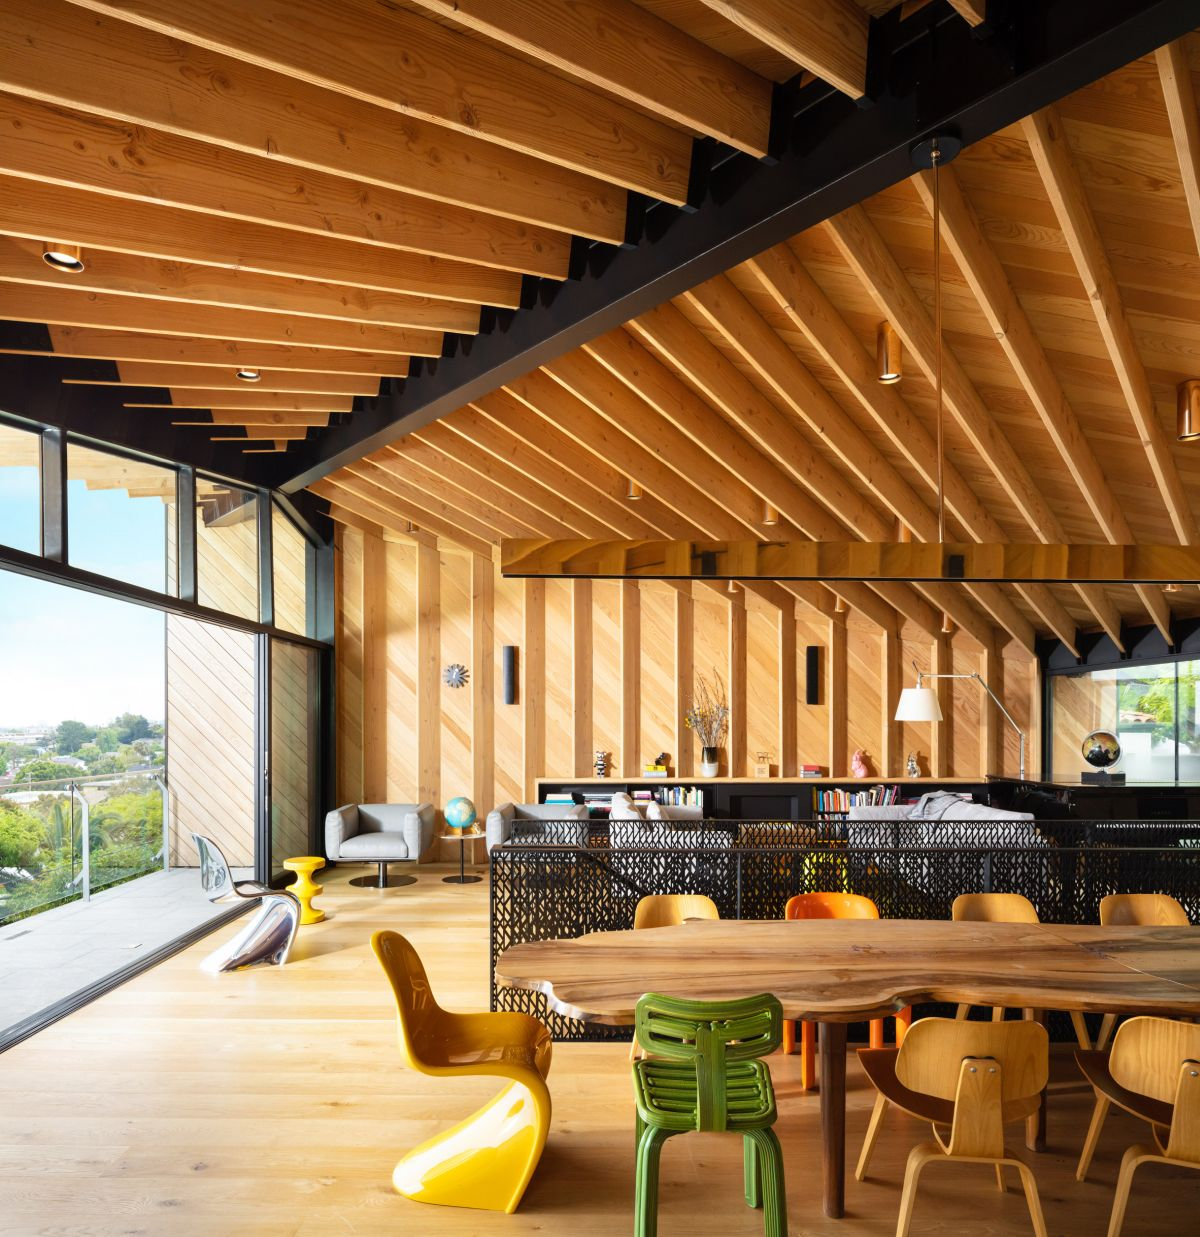 Wooden beams cover the walls and ceilings on the top floor, creating a very warm and inviting environment